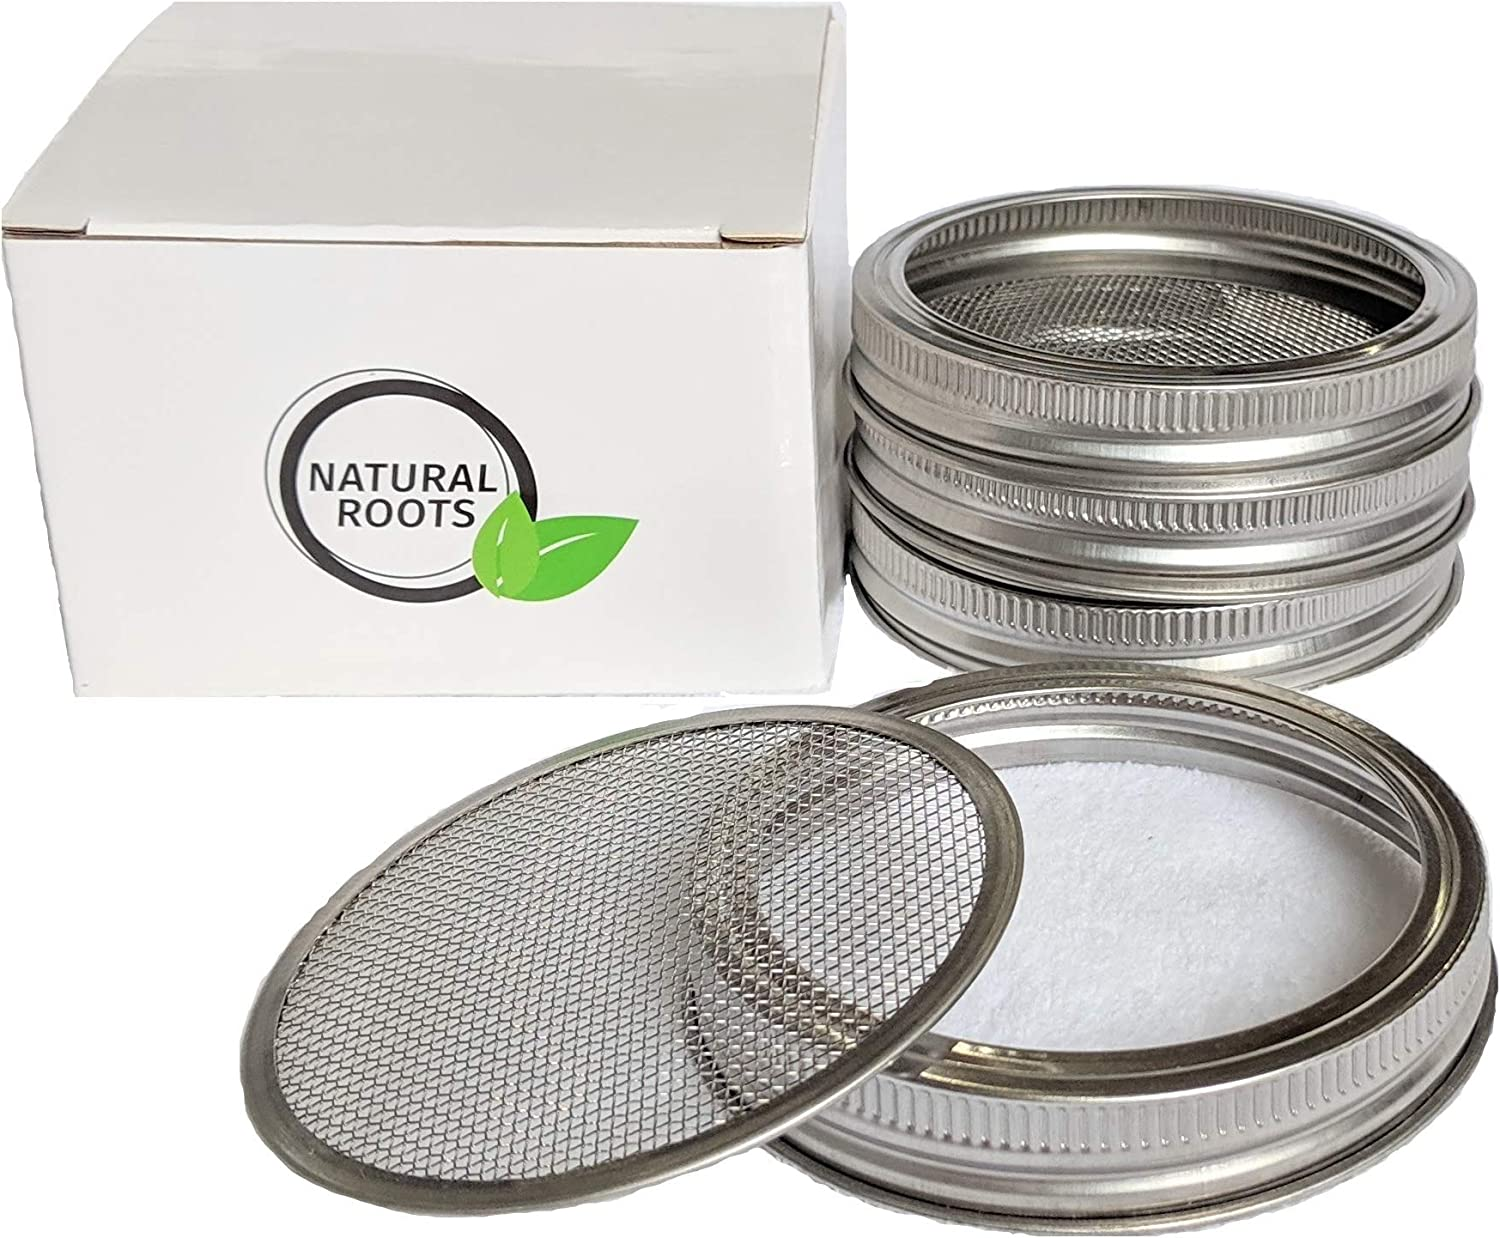 Sprouting Lids-4 Pack 316 Stainless Steel 100% Rust Free for Wide Mouth Mason Jars Lid Kit, Sprout Fresh Organic Broccoli Seeds, Mung Beans, Alfalfa Seed, Lentils, Radish and More (Seeds not included)